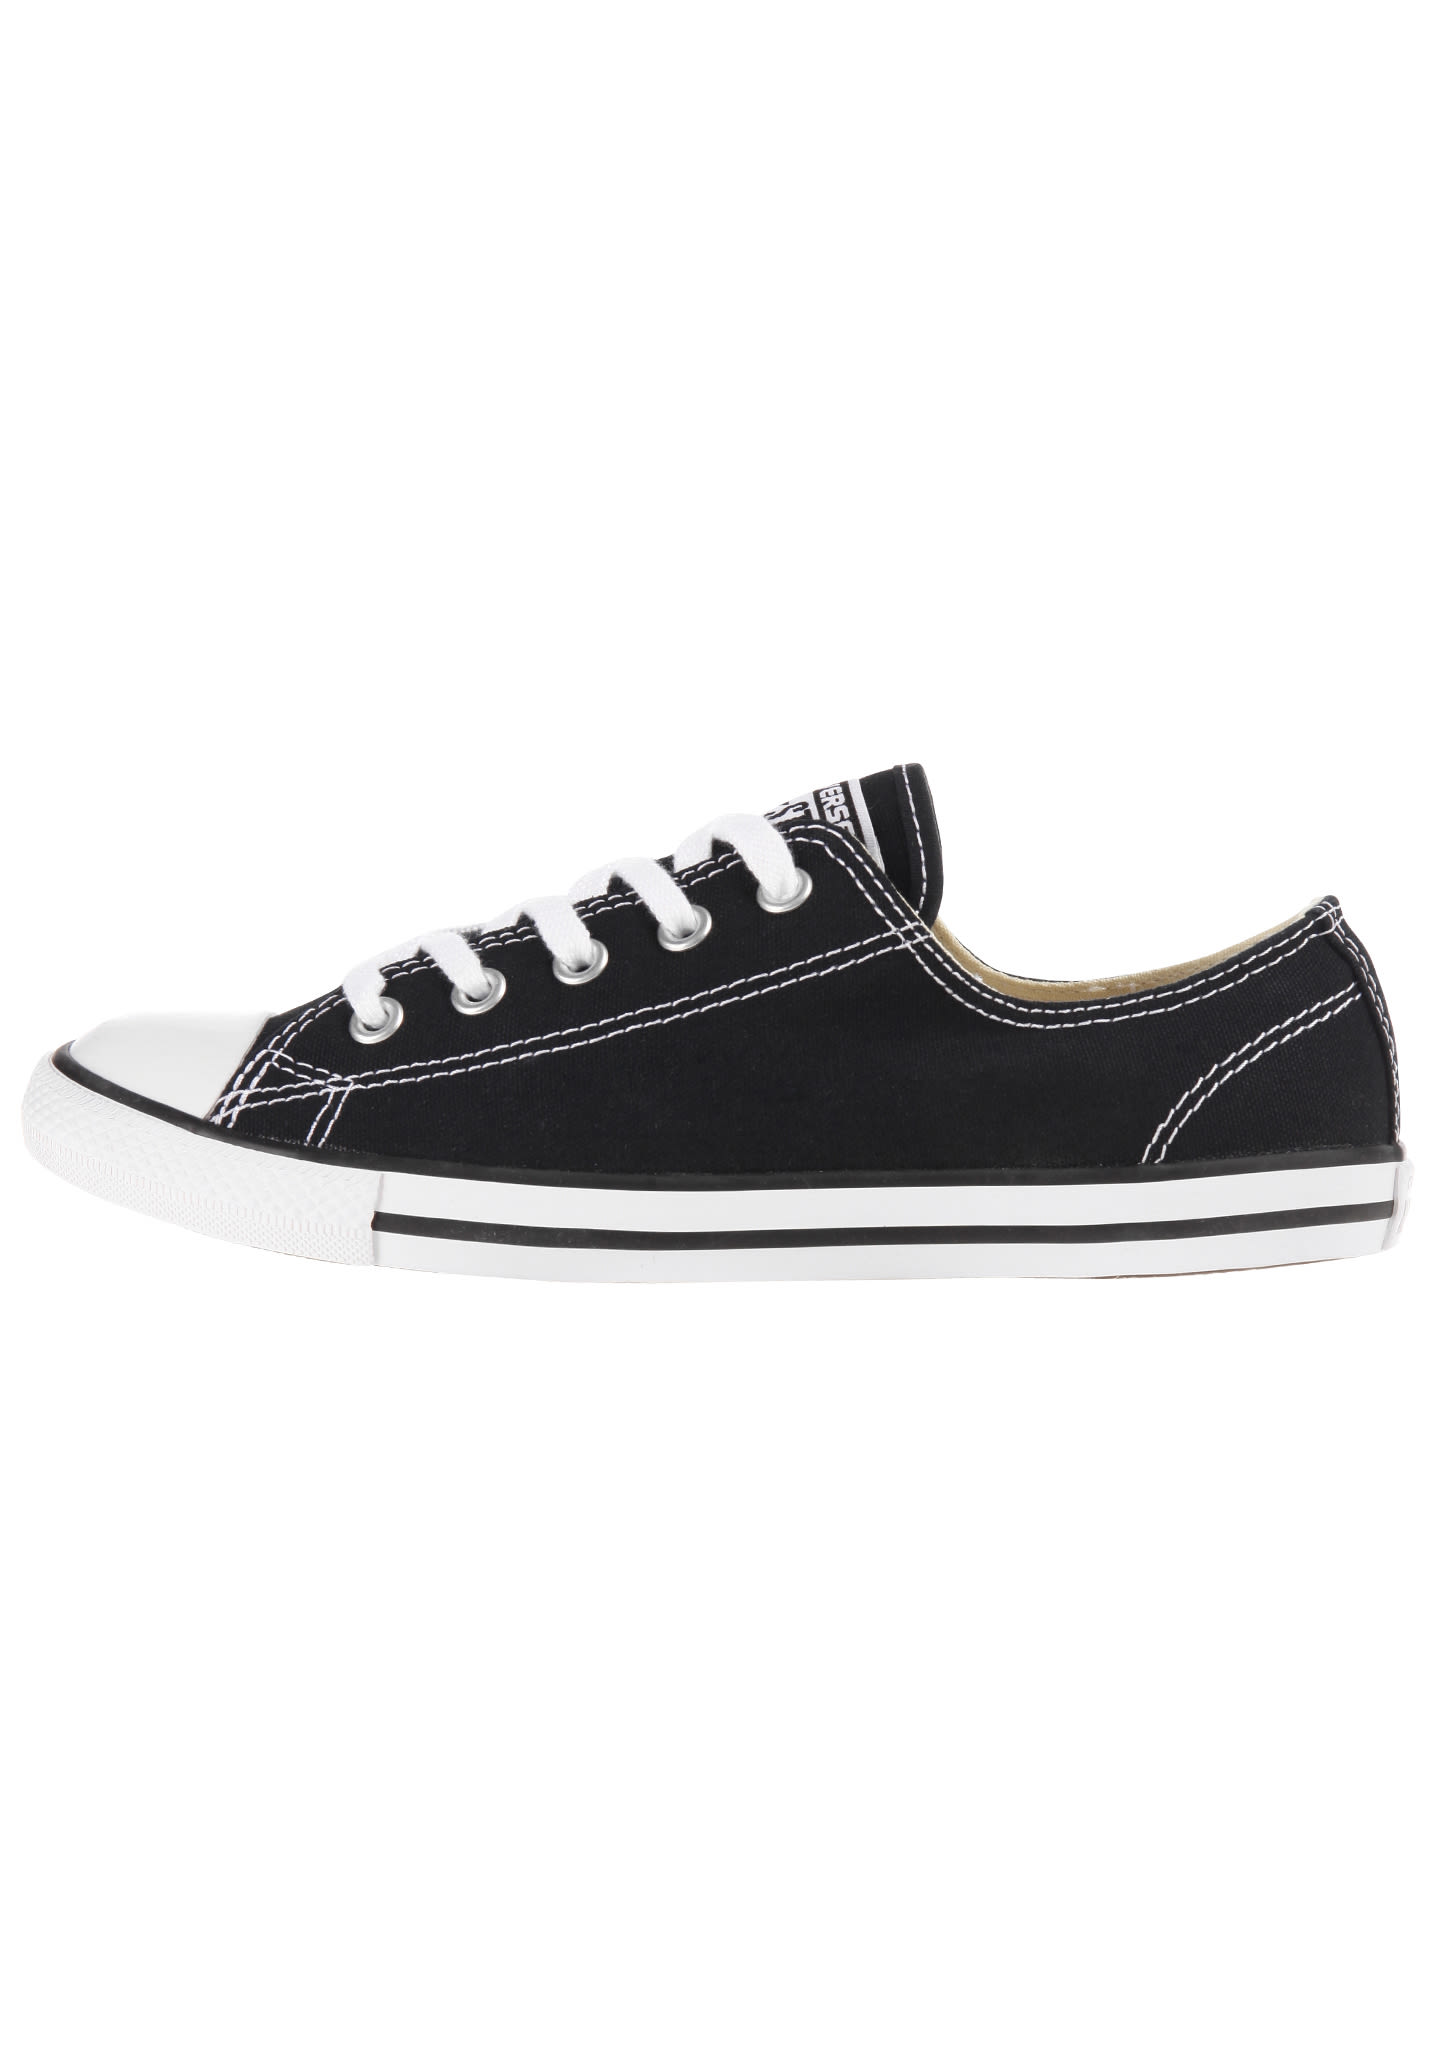 ca3aa82b9c87 Converse Chuck Taylor All Star Dainty Ox - Sneakers for Women - Black -  Planet Sports